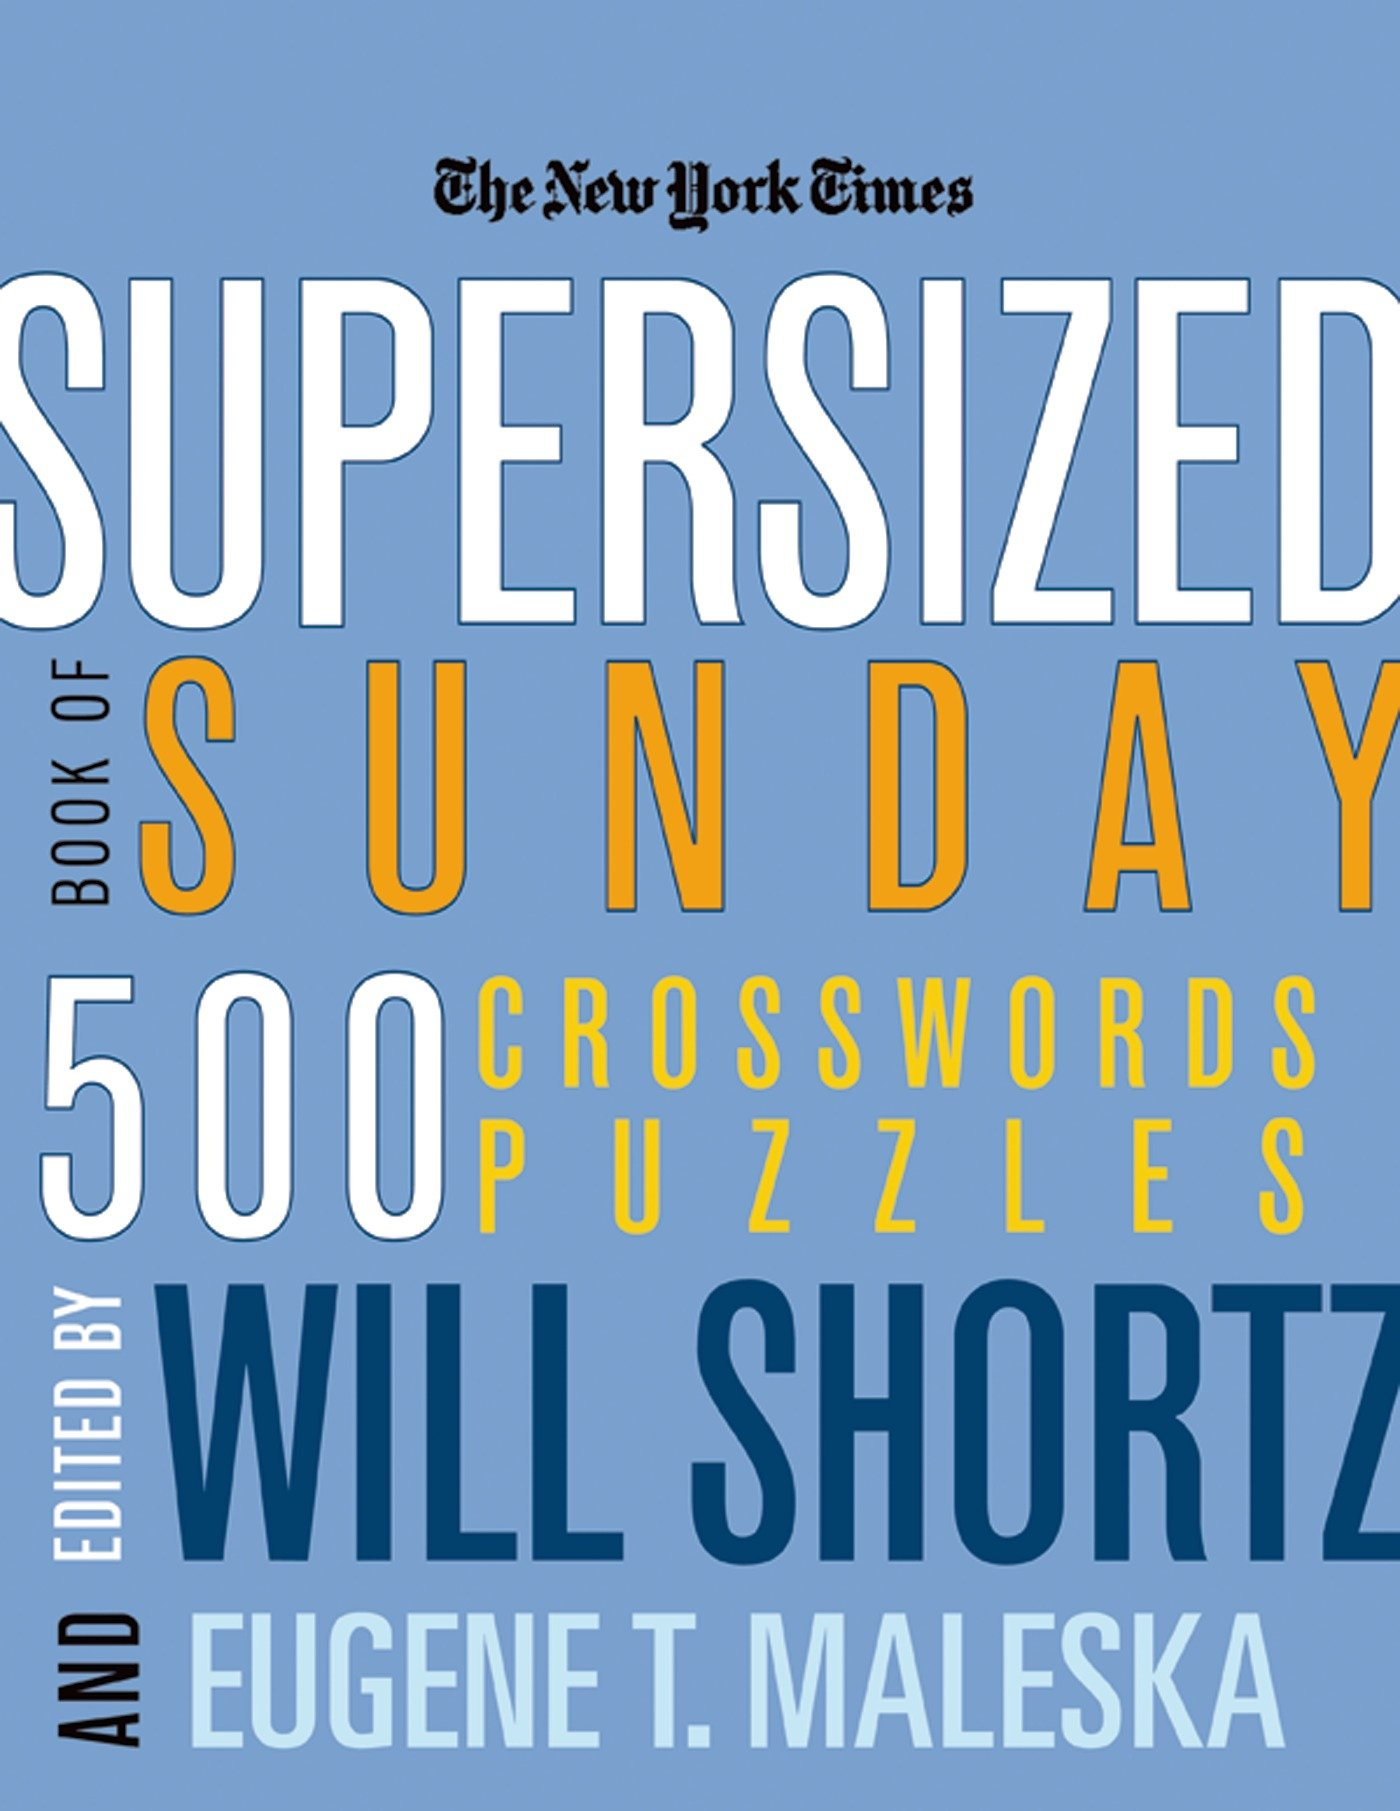 The New York Times Supersized Book of Sunday Crosswords: 500 Puzzles (New York Times Crossword Puzzles) pdf epub